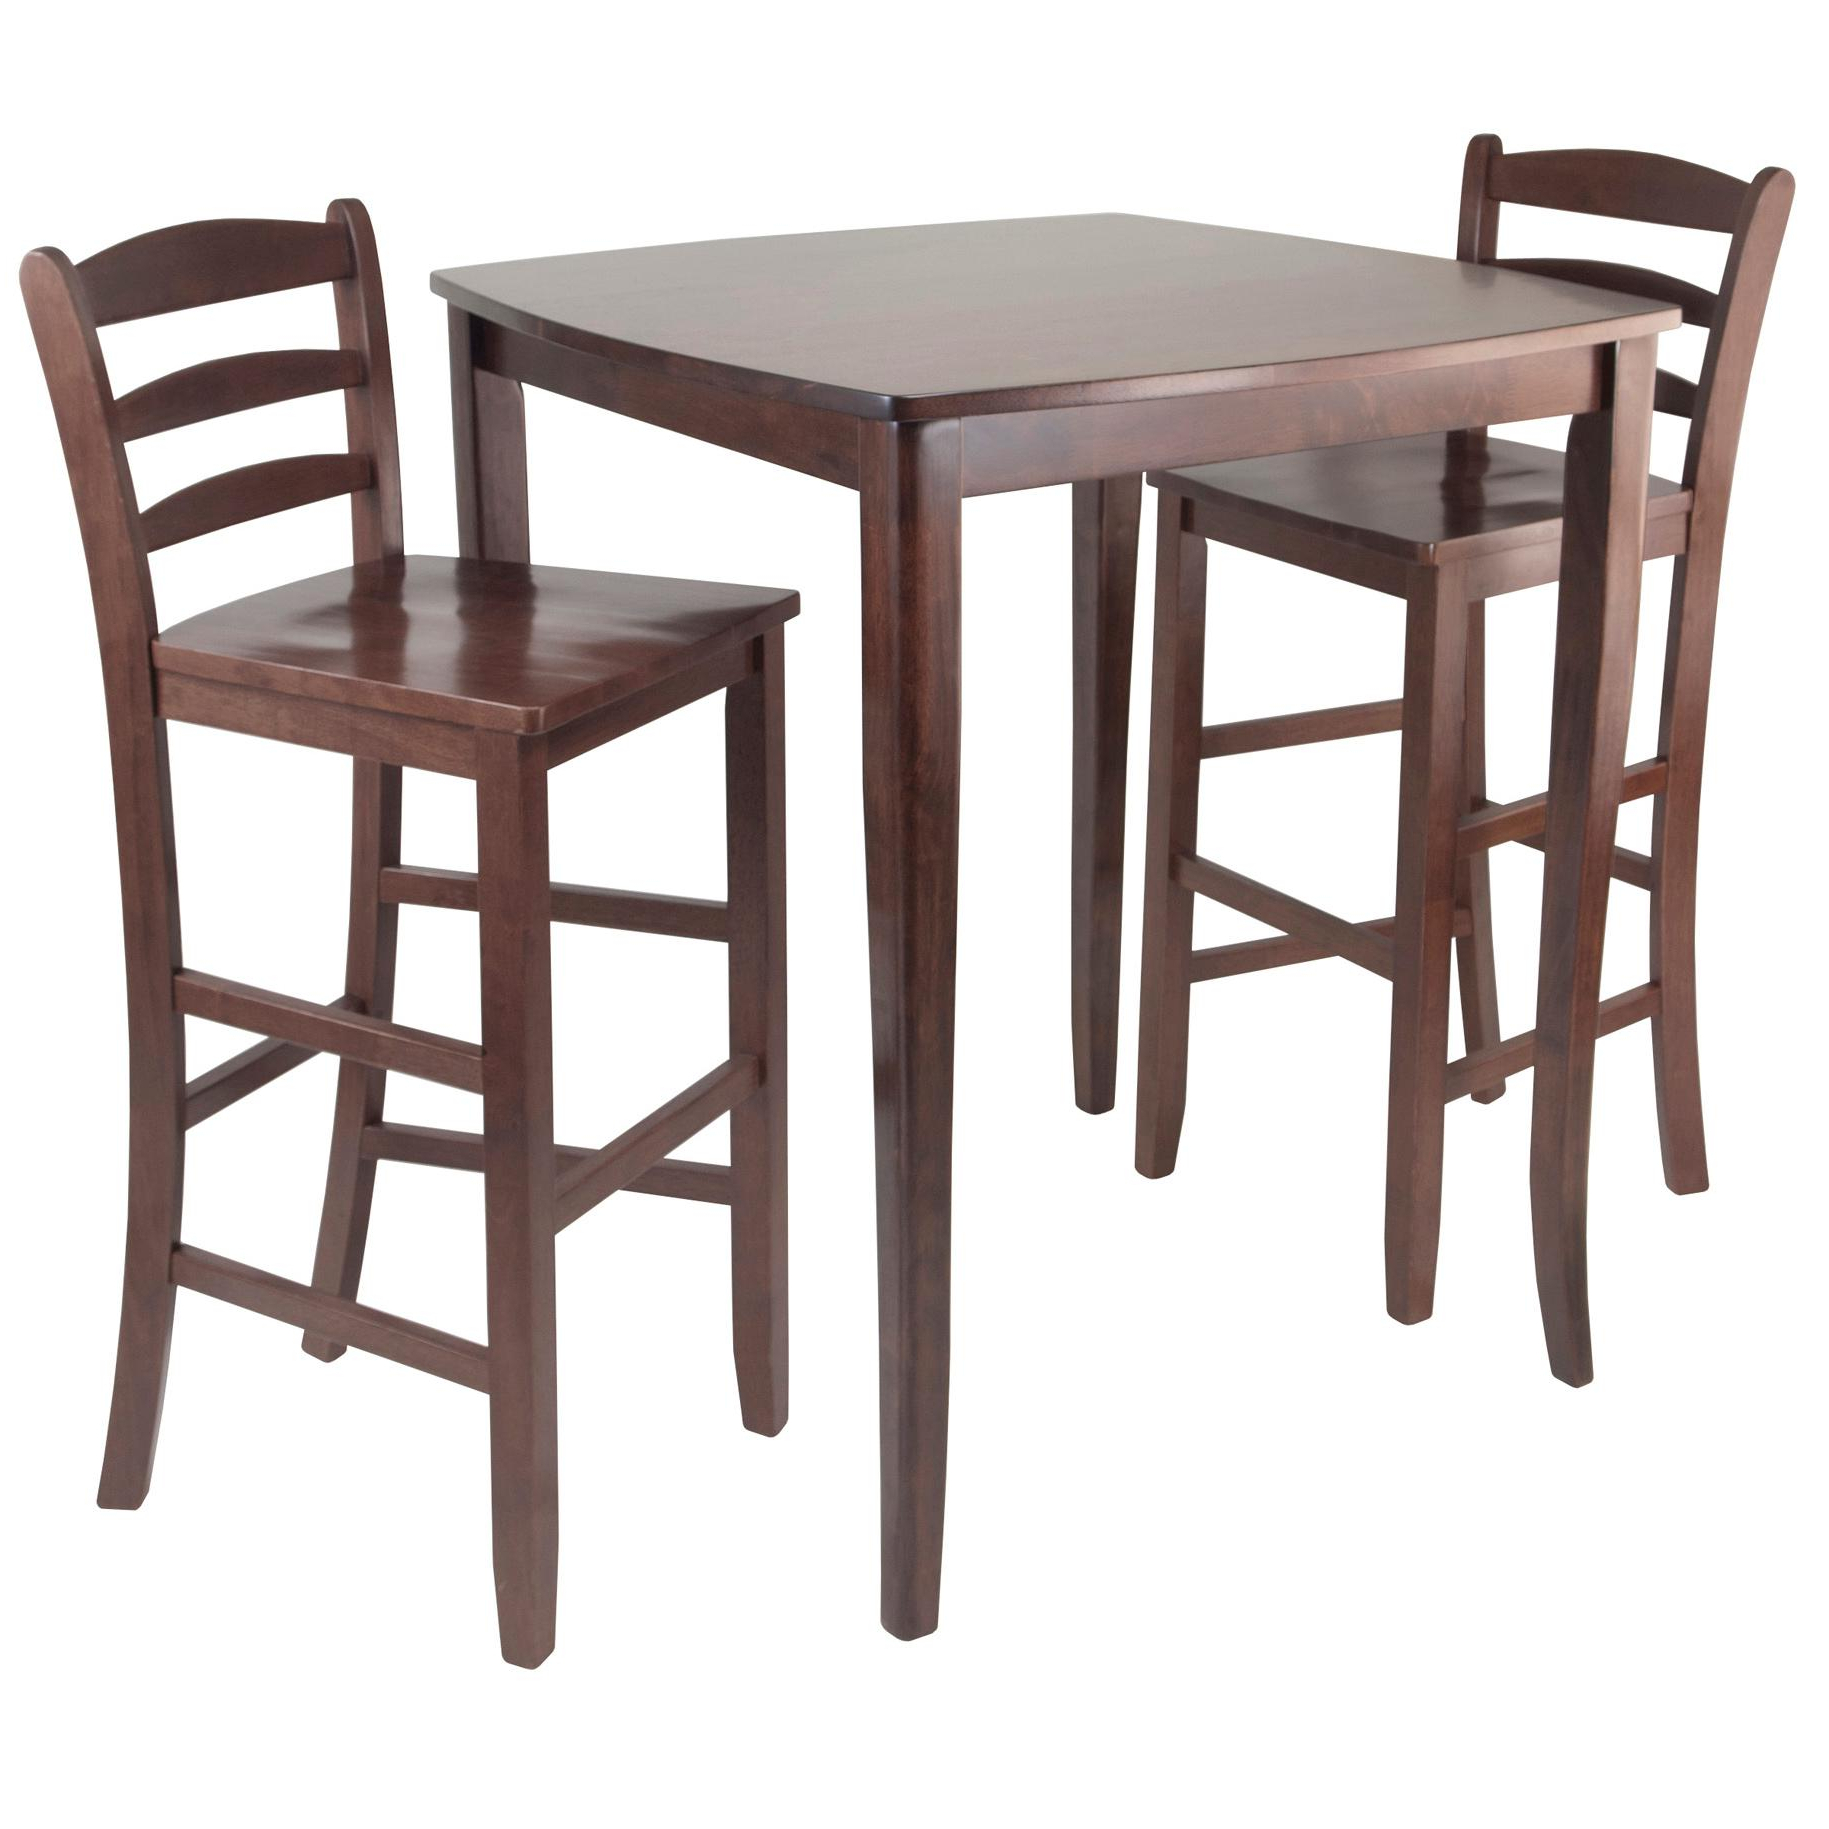 Best And Newest Winsome 3 Piece Counter Height Dining Sets In Amazon – Winsome Inglewood High/pub Dining Table With Ladder (View 2 of 25)